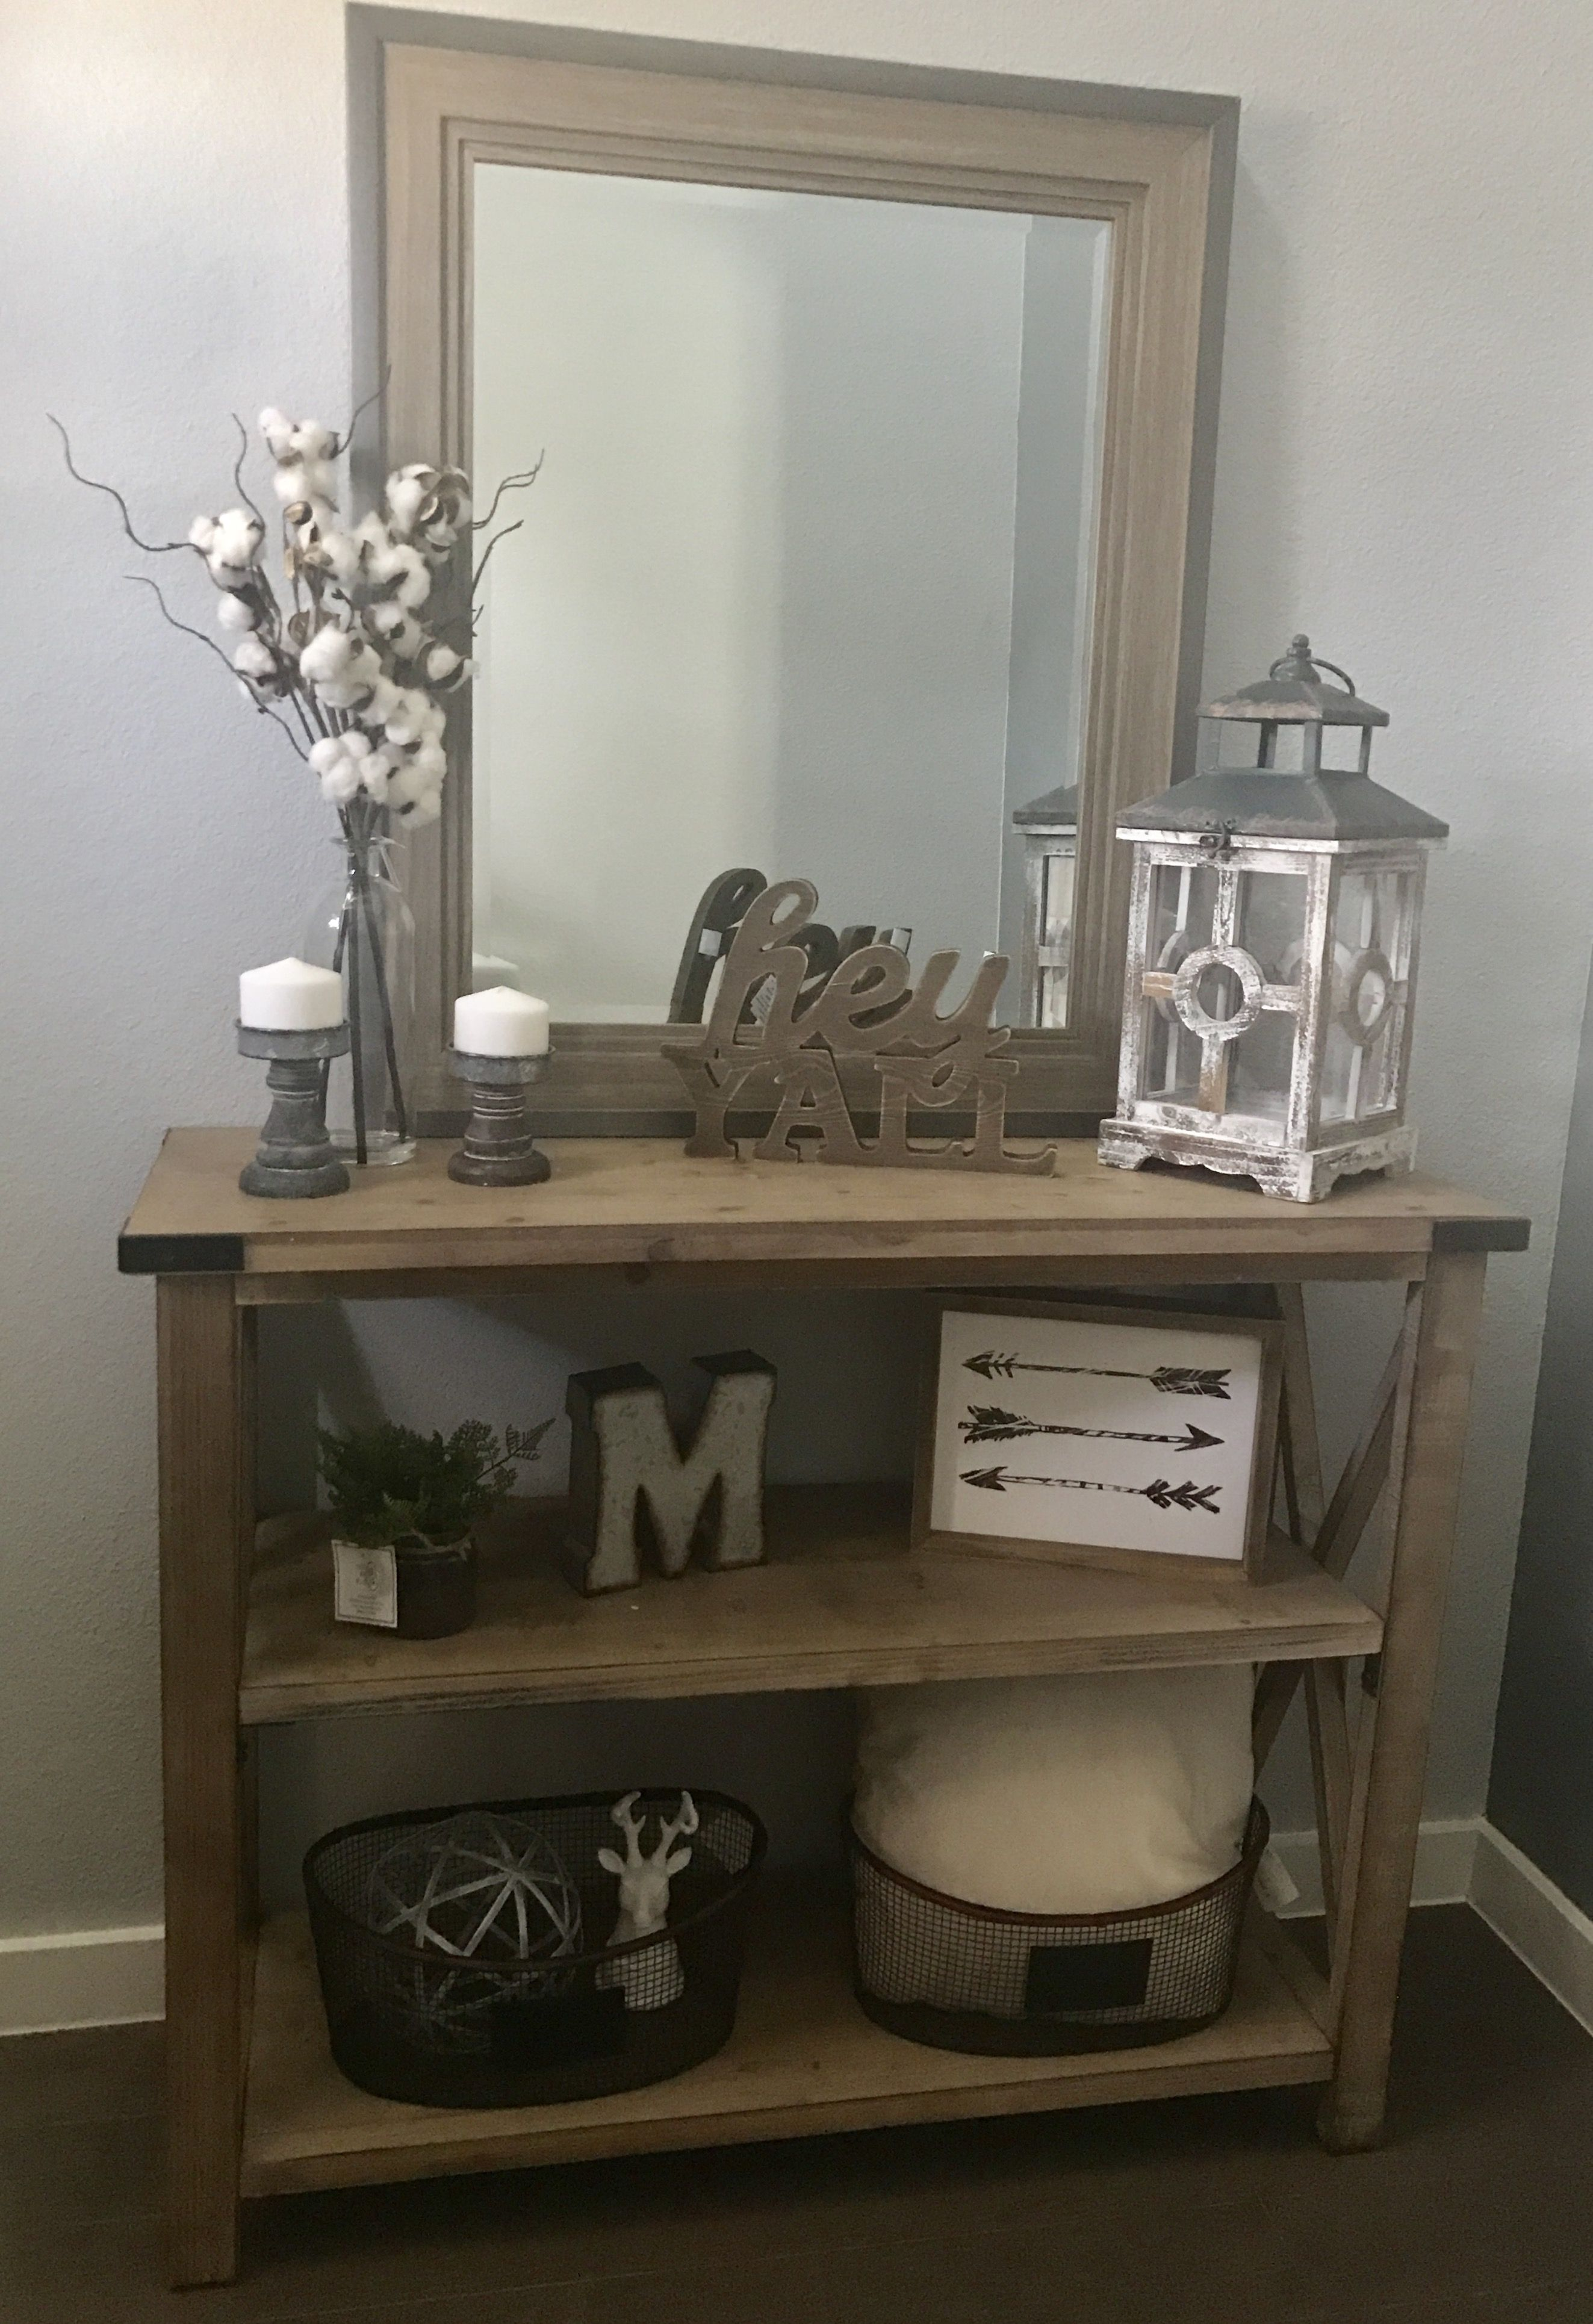 new modern farmhouse entry way console table decor mcmillen home style accent metal and glass coffee yellow placemats mini bedside lamp white wicker furniture inexpensive tables